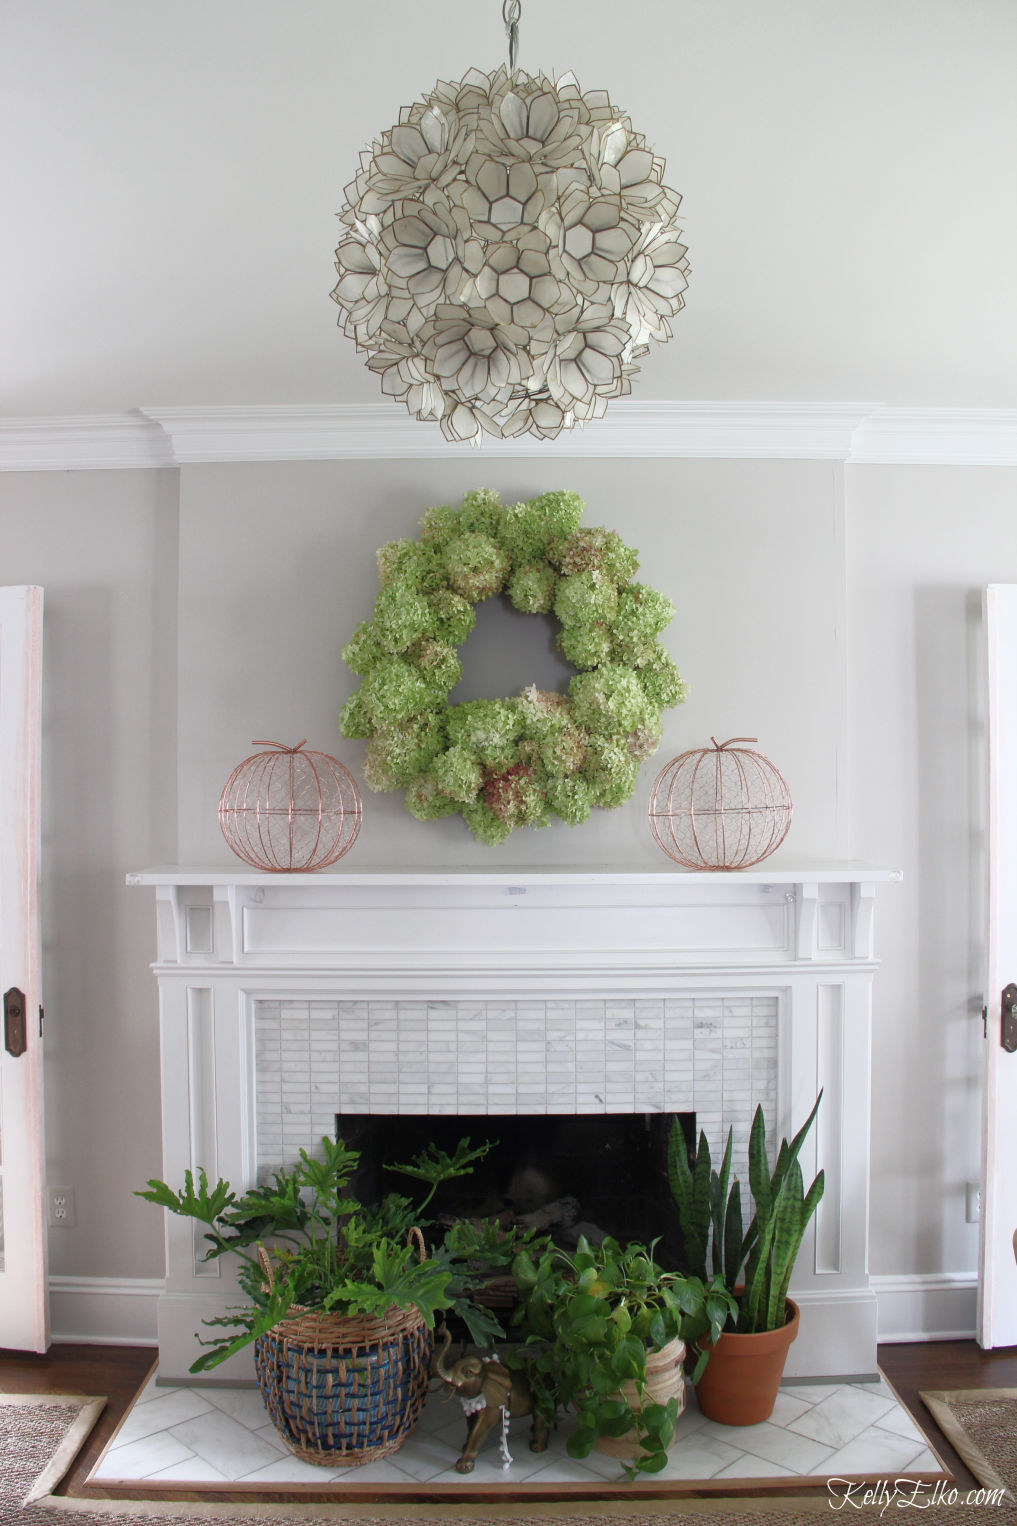 8 Creative Fall Mantel Decorating Ideas - DIY Limelight Hydrangea Wreath kellyelko.com #hydrangeas #wreaths #diyideas #diywreaths #gardening #gardeners #crafts #fallmantel #falldecor #fallcrafts